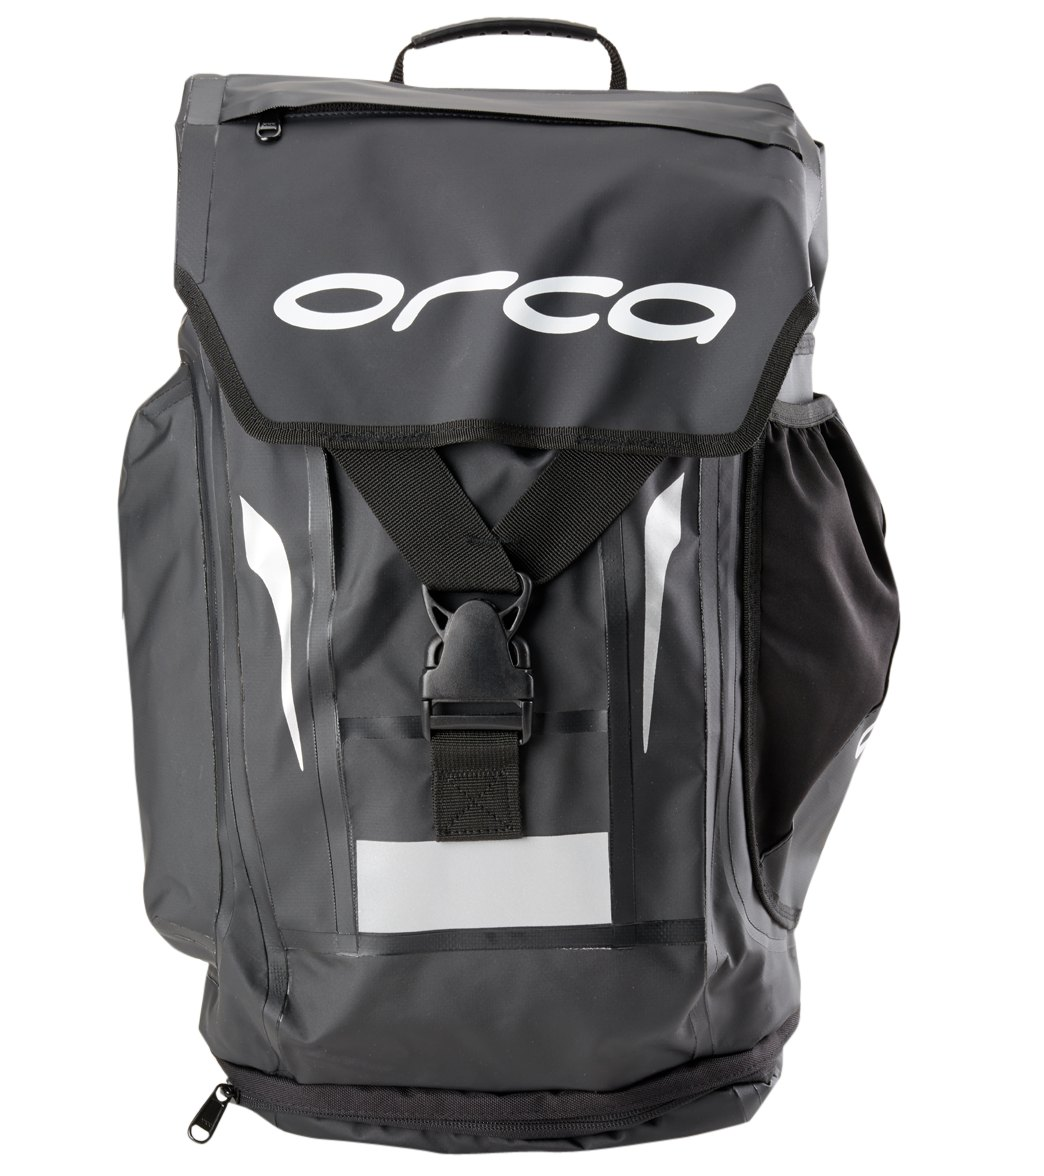 Orca Waterproof Backpack at SwimOutlet.com - Free Shipping